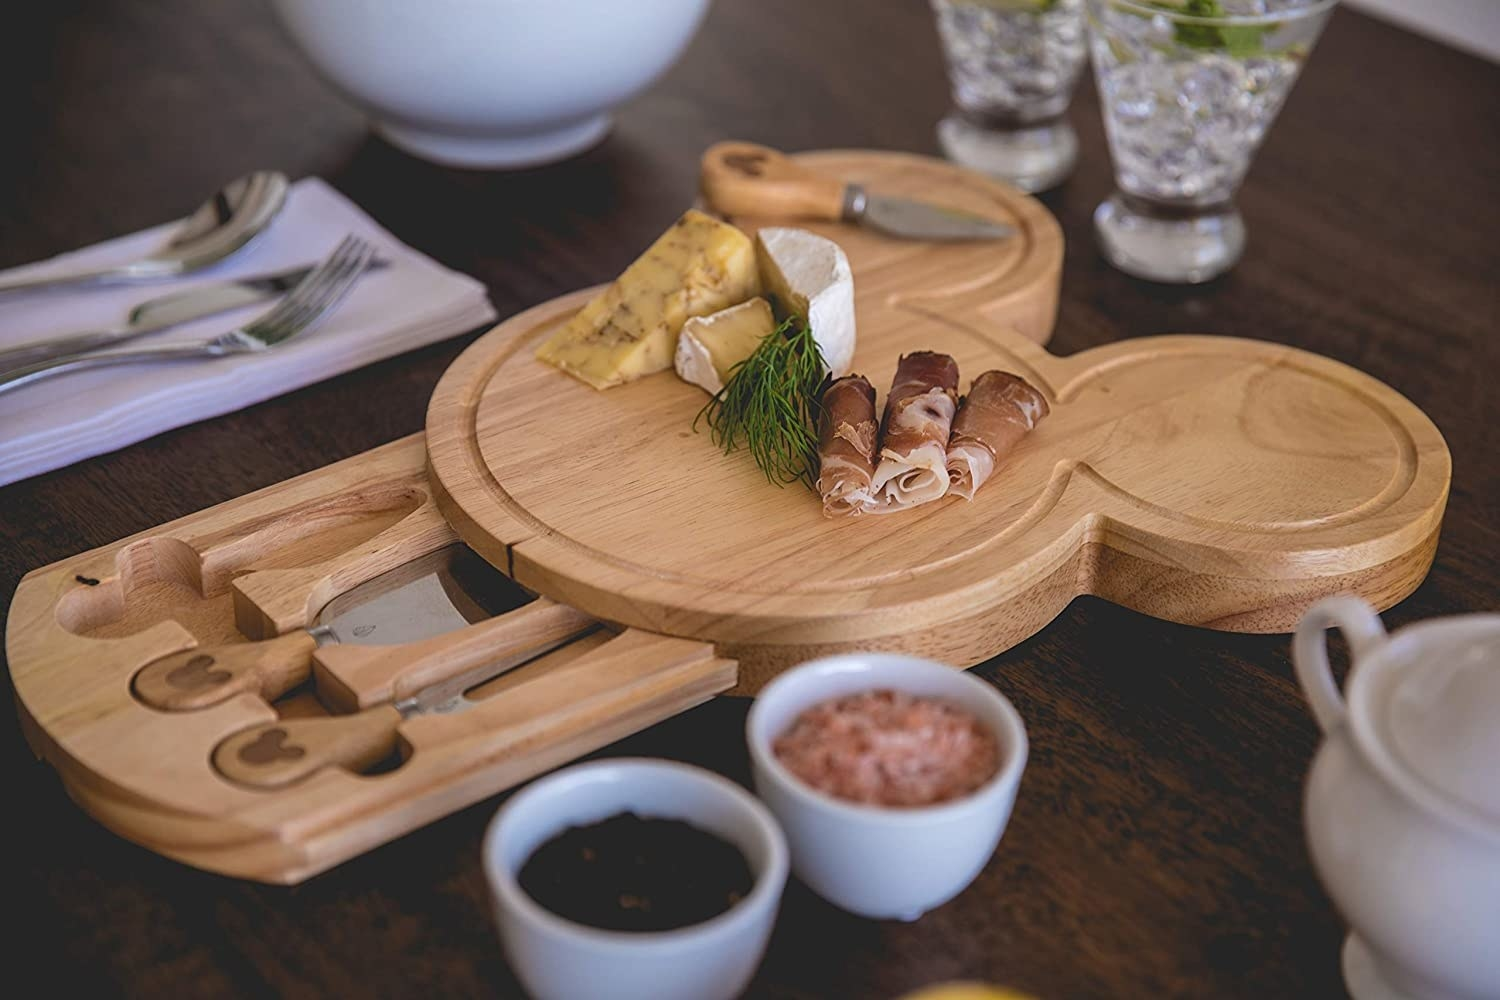 The board covered in meats and cheeses with the drawer pulled out